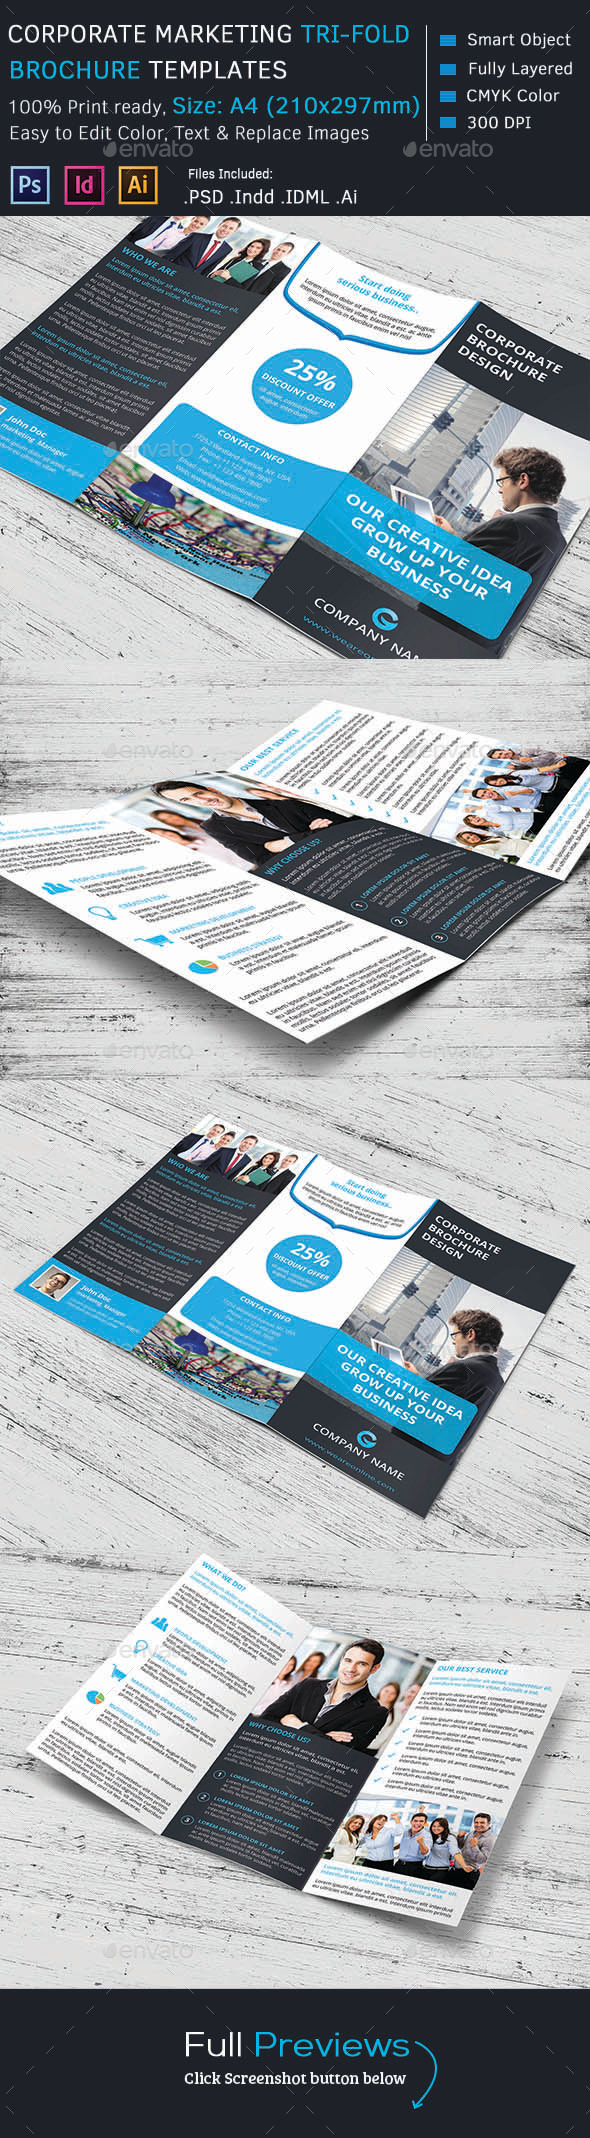 Corporate Marketing Tri-Fold Brochure - Corporate Brochures